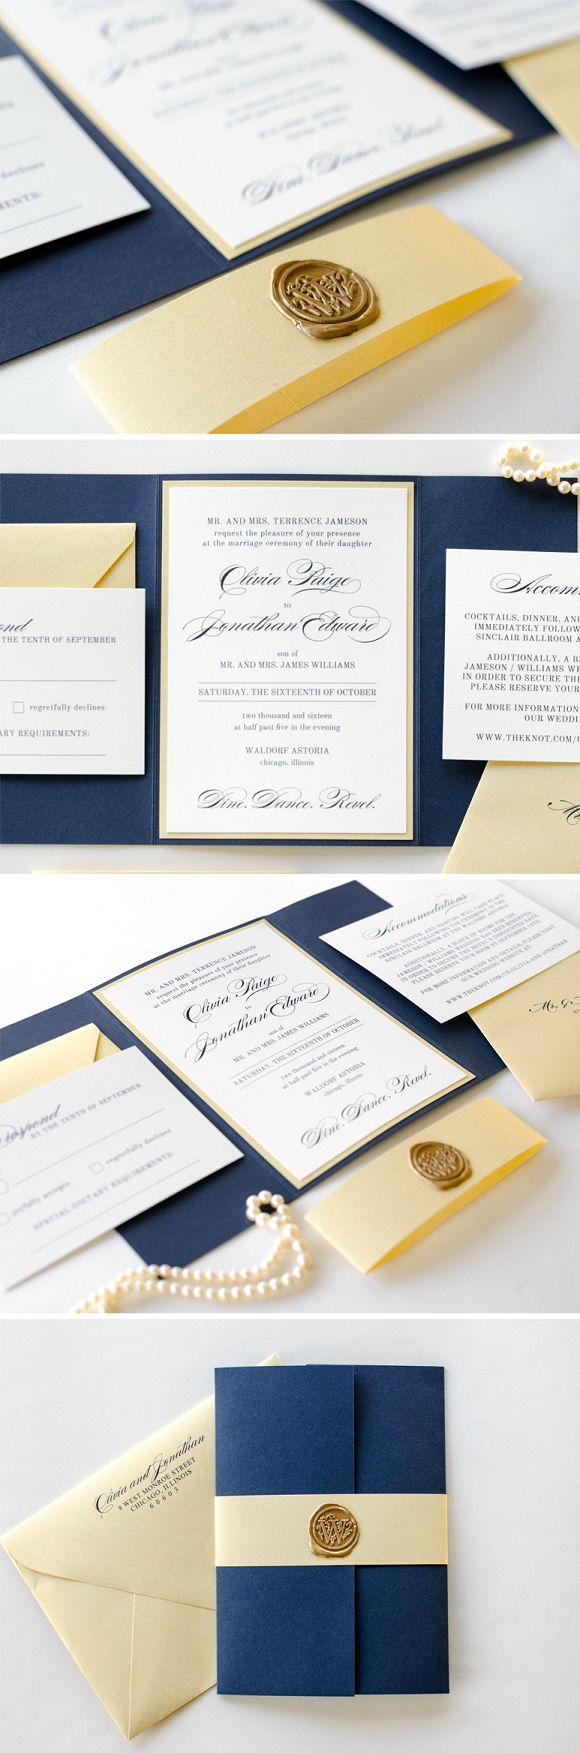 second wedding invitation verbiage%0A The Revel wedding invitation is a Navy Blue  Gold Shimmer  and Ivory Wedding  Invitation with a Gold Wax Seal  Second City Stationery is a custom wedding